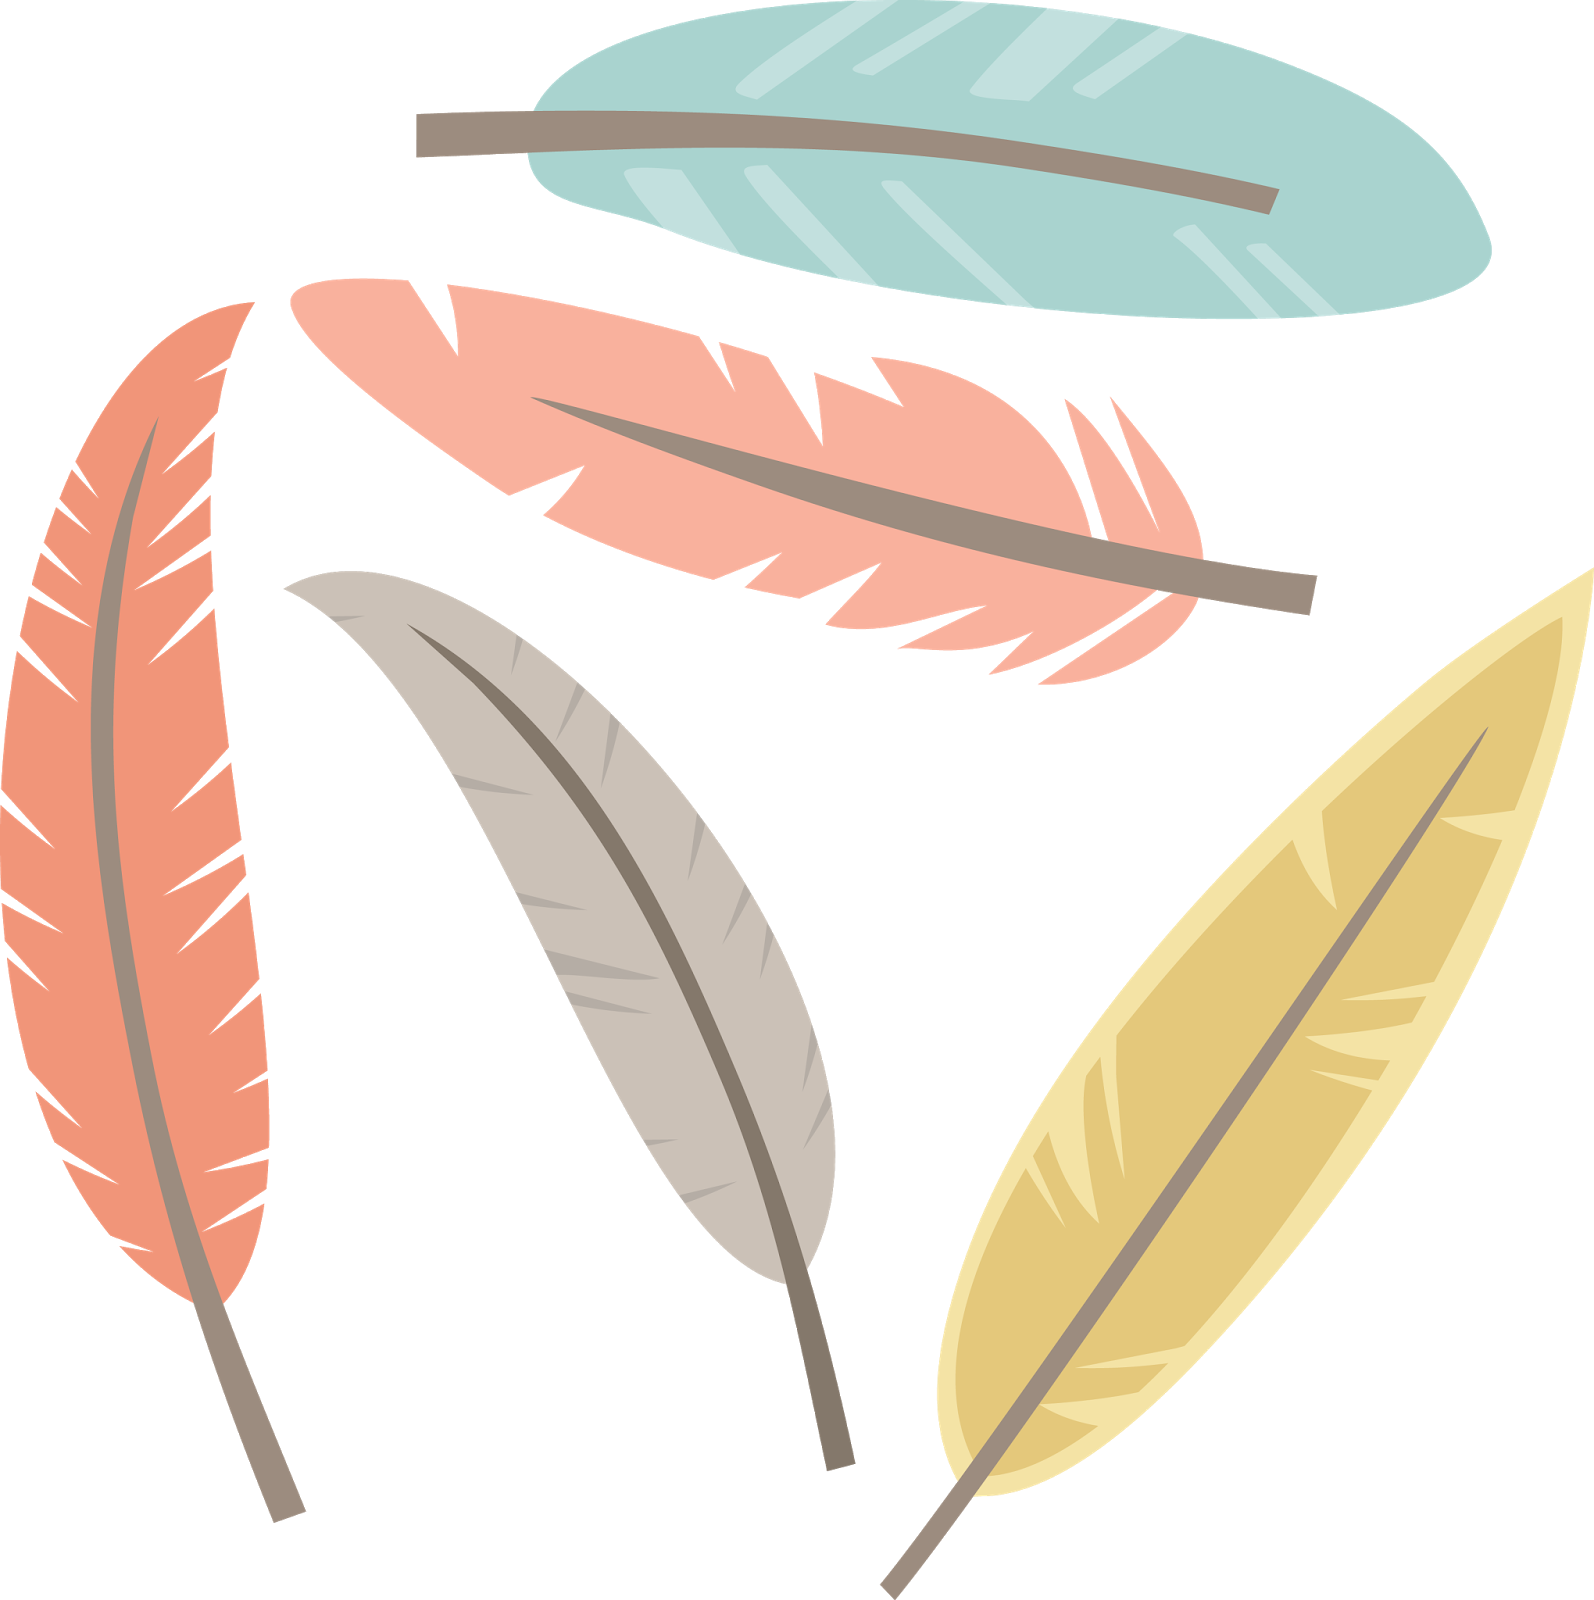 Feathers clipart creative. Miss kate cuttables happy